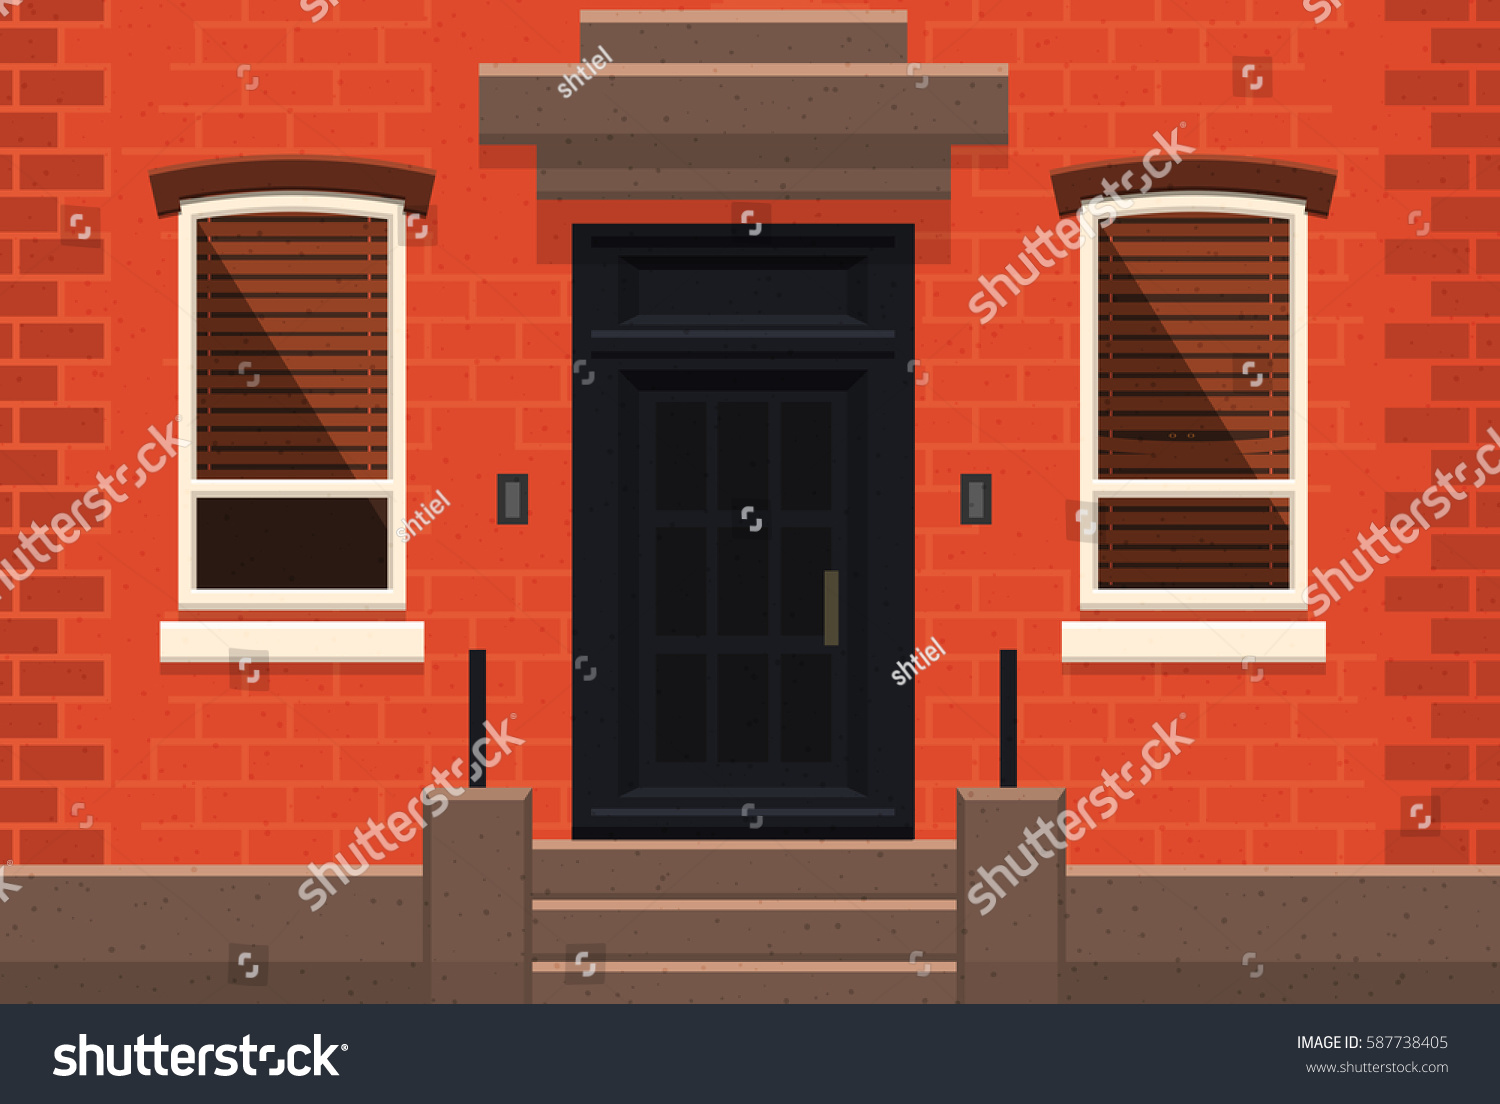 Brooklyn Red Brick Apartment Building Flat Stock Vector 587738405    Shutterstock